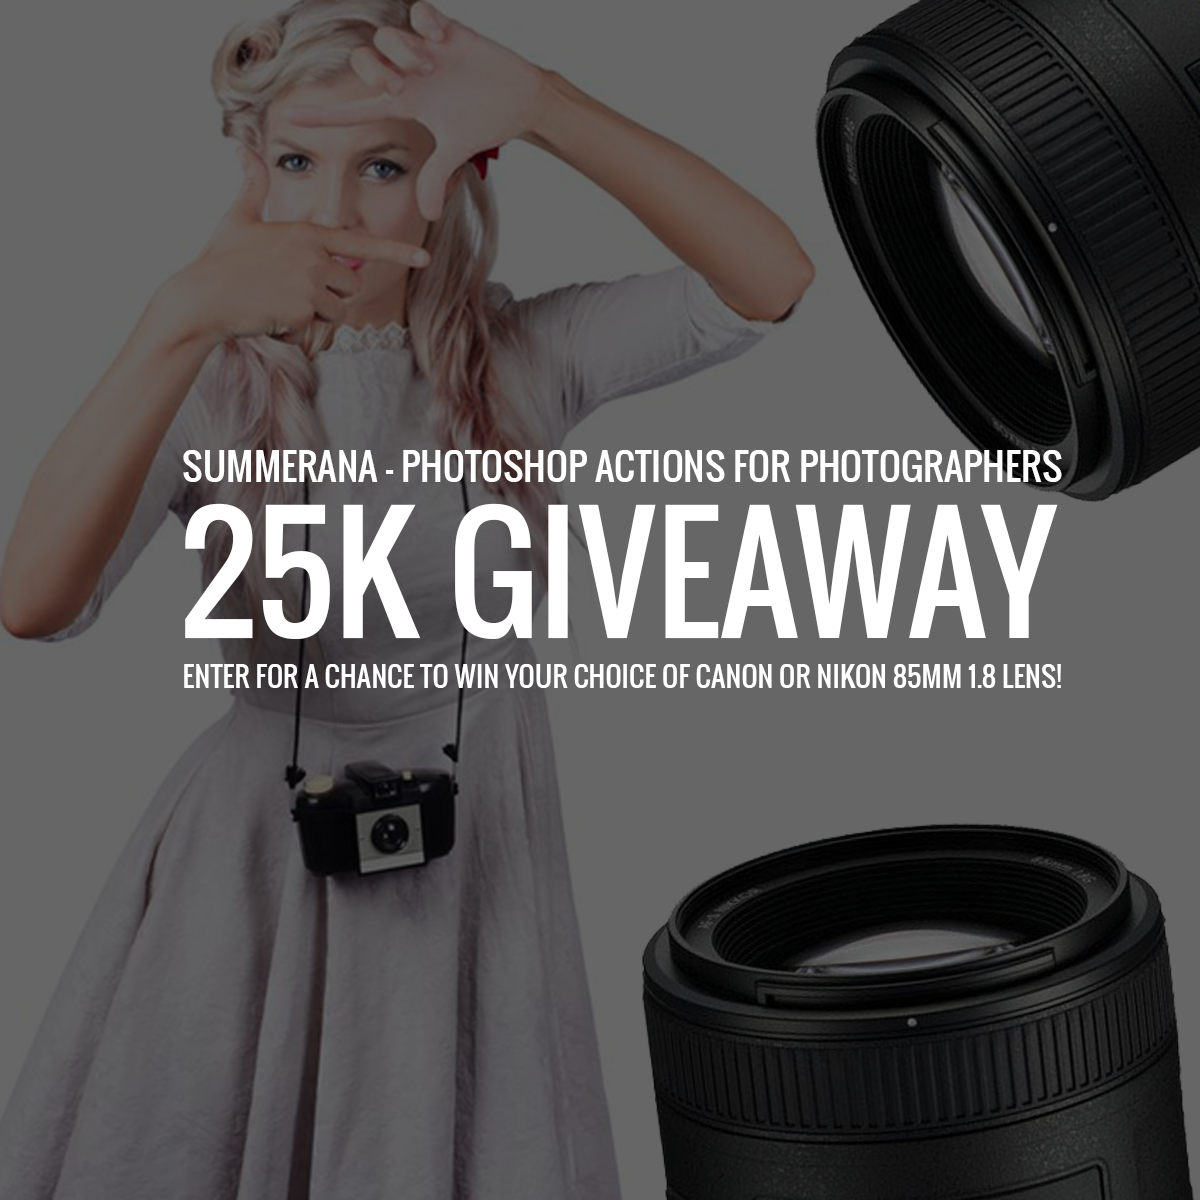 summerana-photoshop-actions-for-photographers-giveaway-slider25K-2